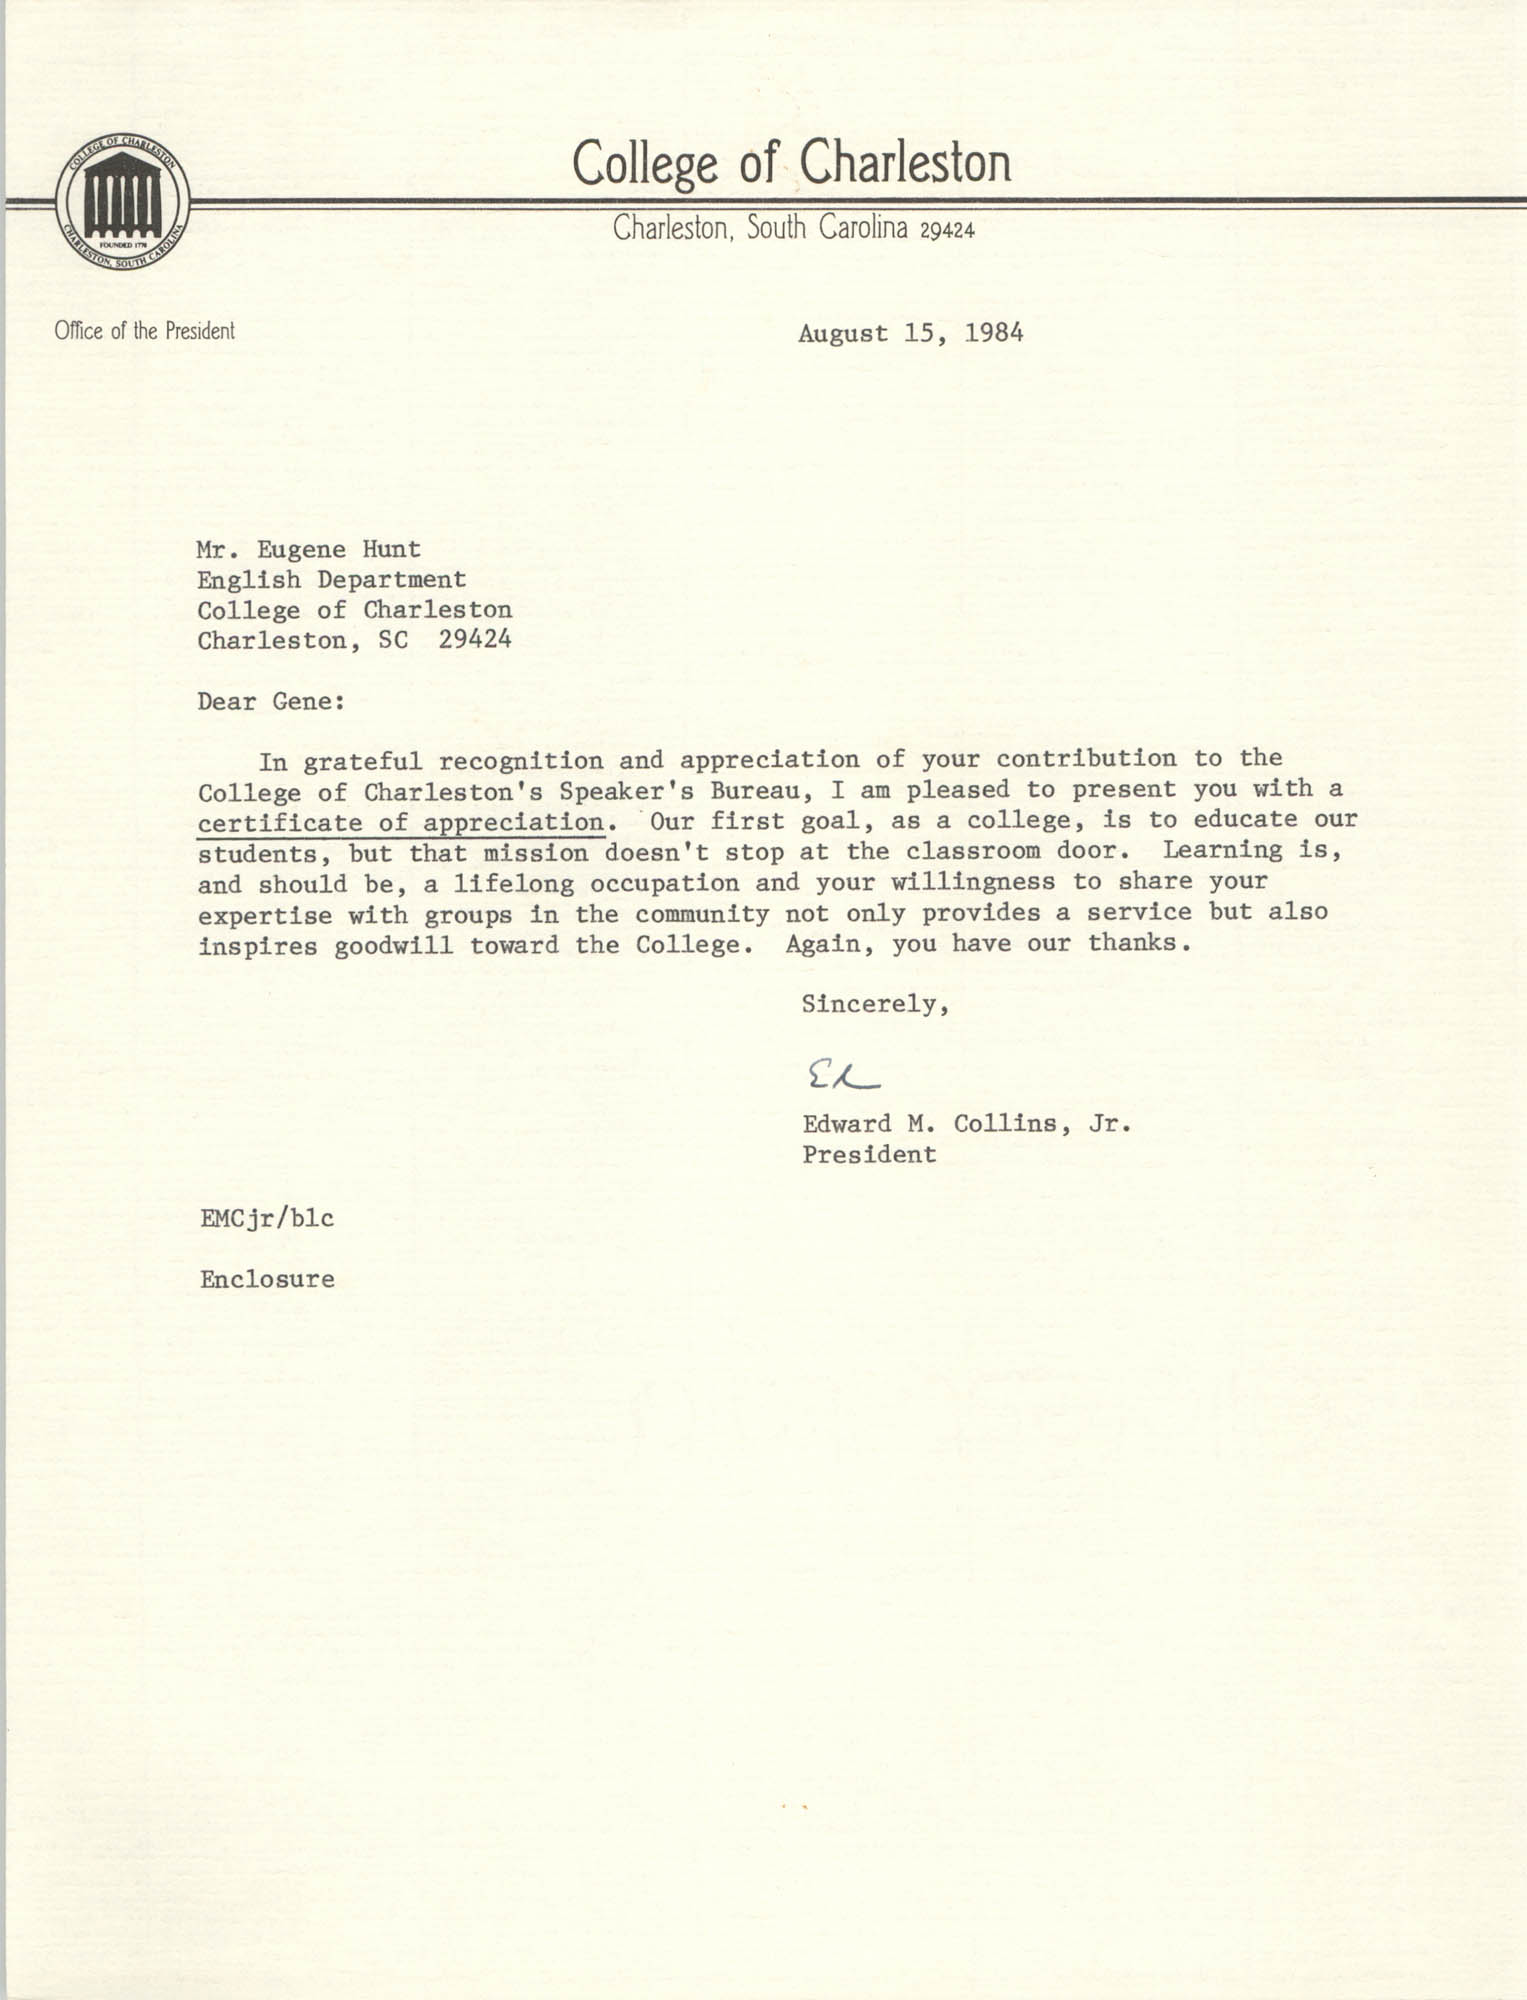 Letter from Edward M. Collins, Jr. to Eugene Hunt, August 15, 1984